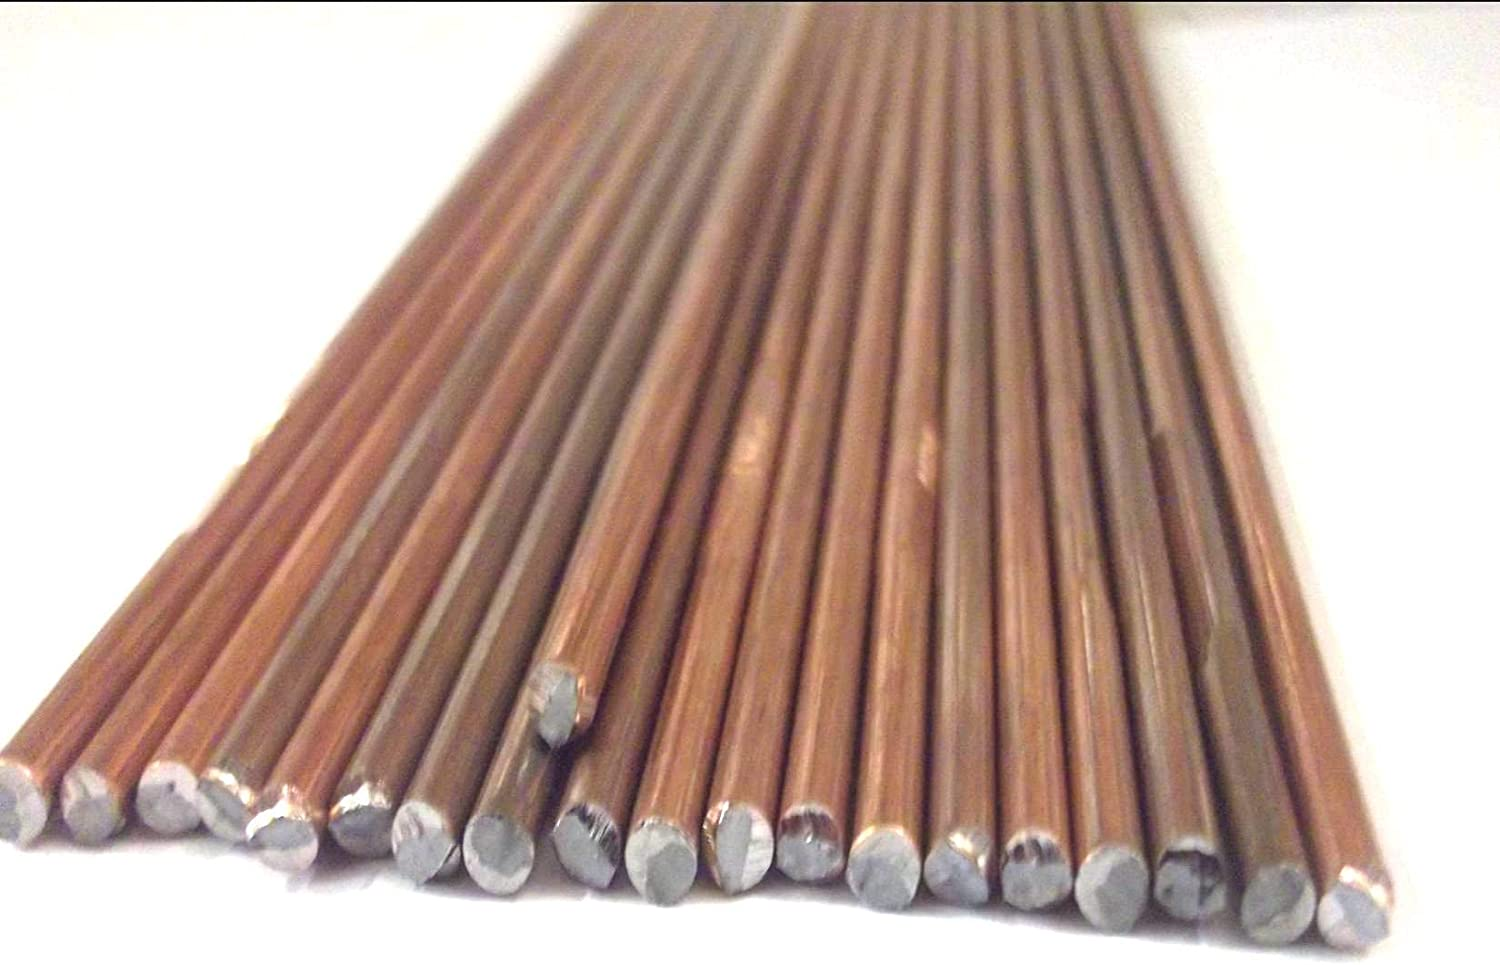 Innovo 10 x 495mm Gas Oxy Welding Rods 3.2mm Copper Coated CCMS Mild Steel